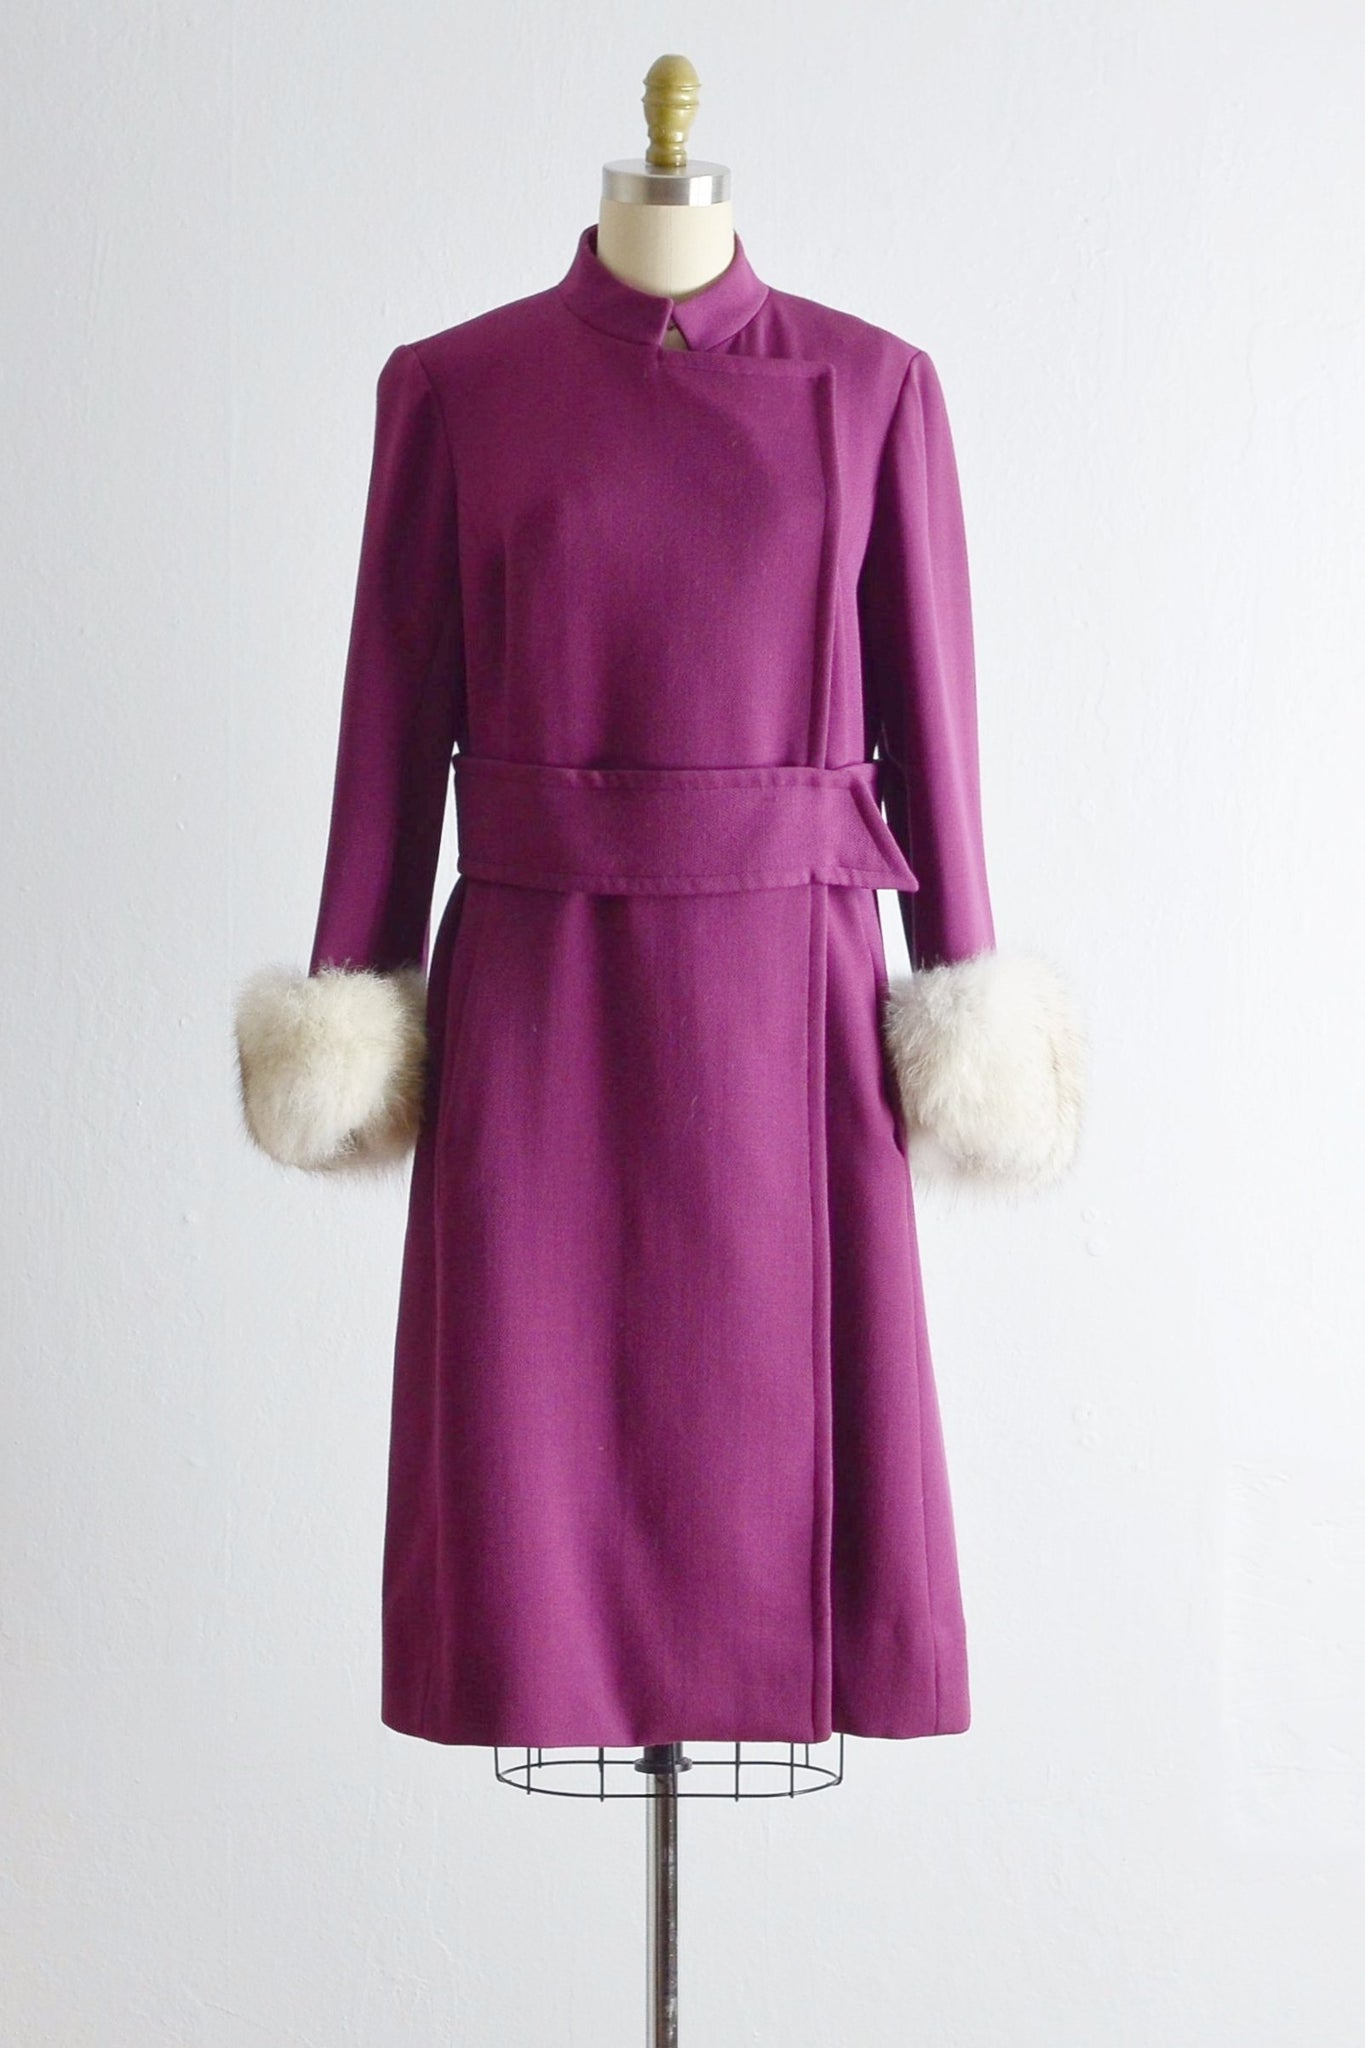 Vintage 1960s Plum Dress Coat - Pickled Vintage